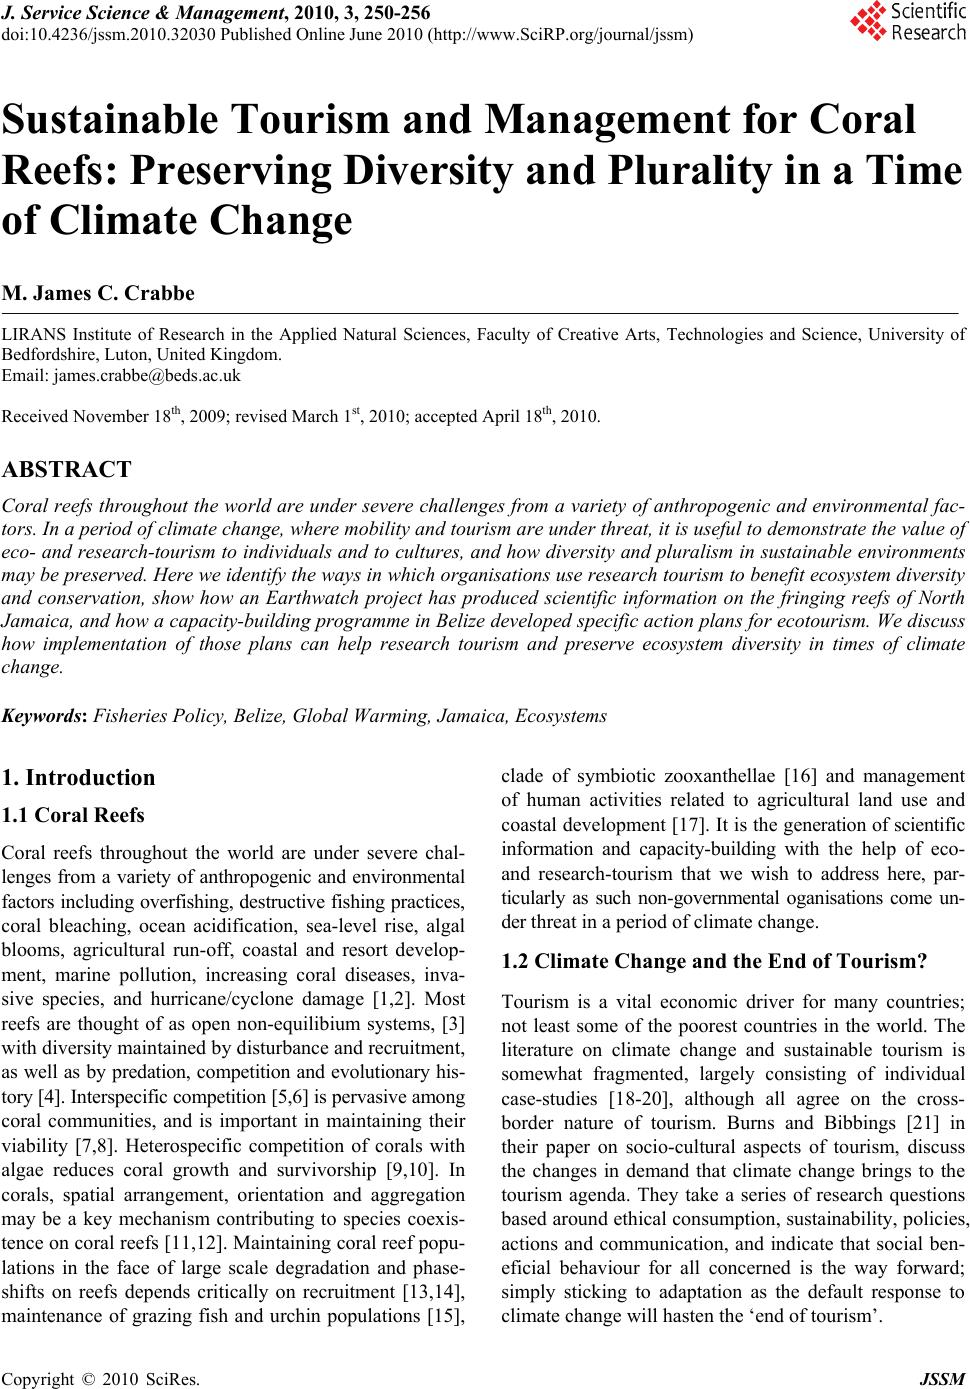 james garvey ethics of climate change free pdf